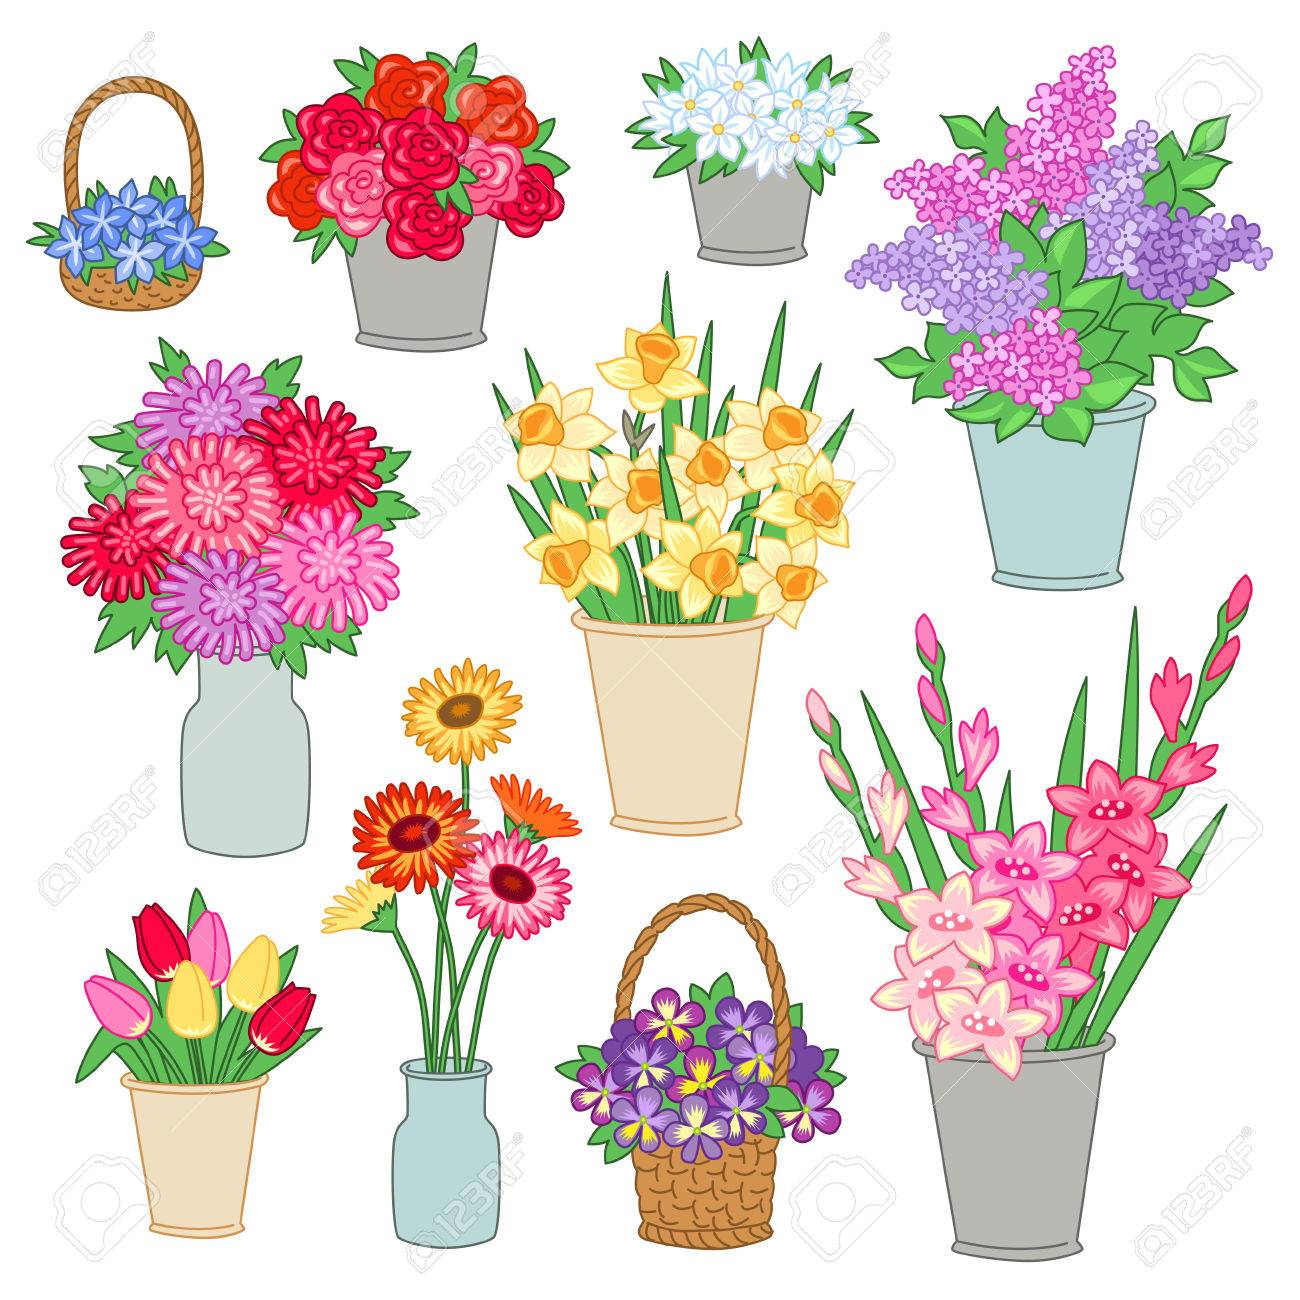 Set Of Bouquets Of Flowers In Buckets And Baskets For The Flower Royalty Free Cliparts Vectors And Stock Illustration Image 60933056